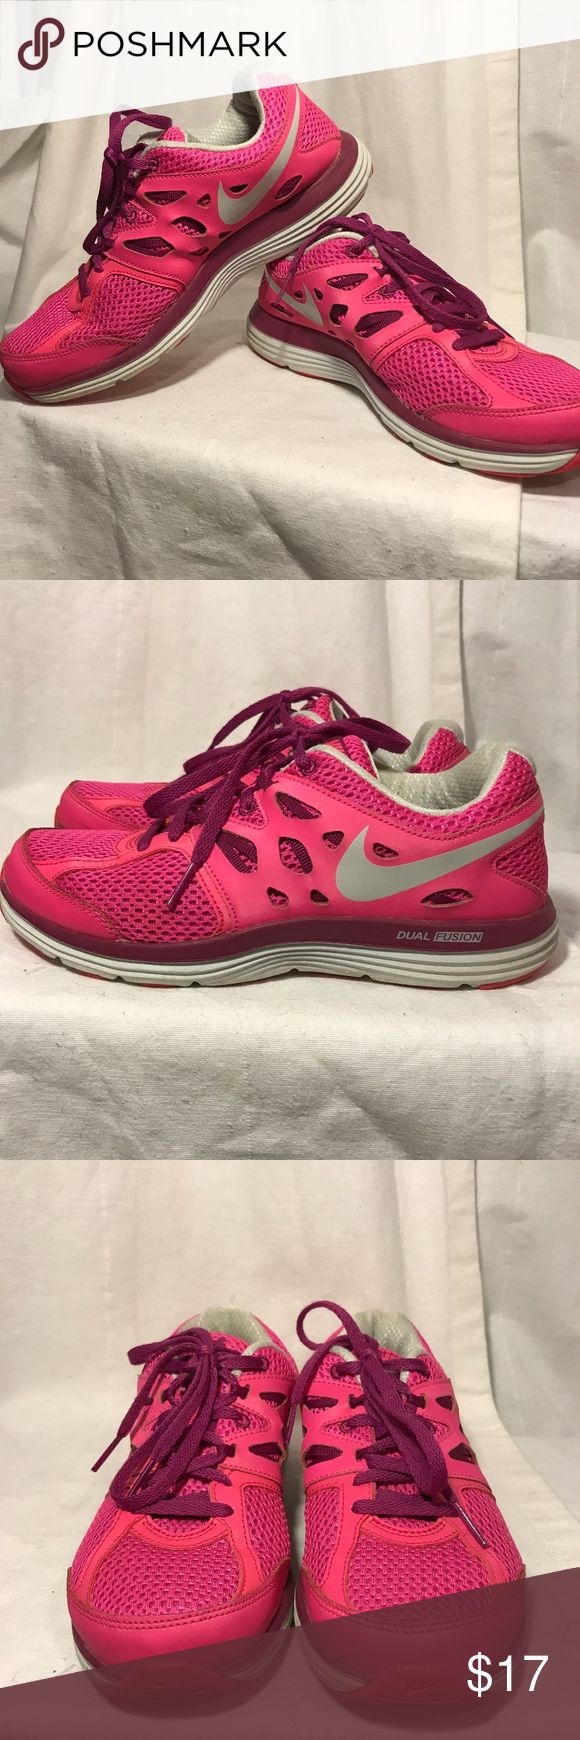 Nike Dual Fusion athletic Shoes Nike Dual Fusion Athletic shoes Size 6.5 excellent condition in hot pink. Feel free to ask any questions Nike Shoes Athletic Shoes